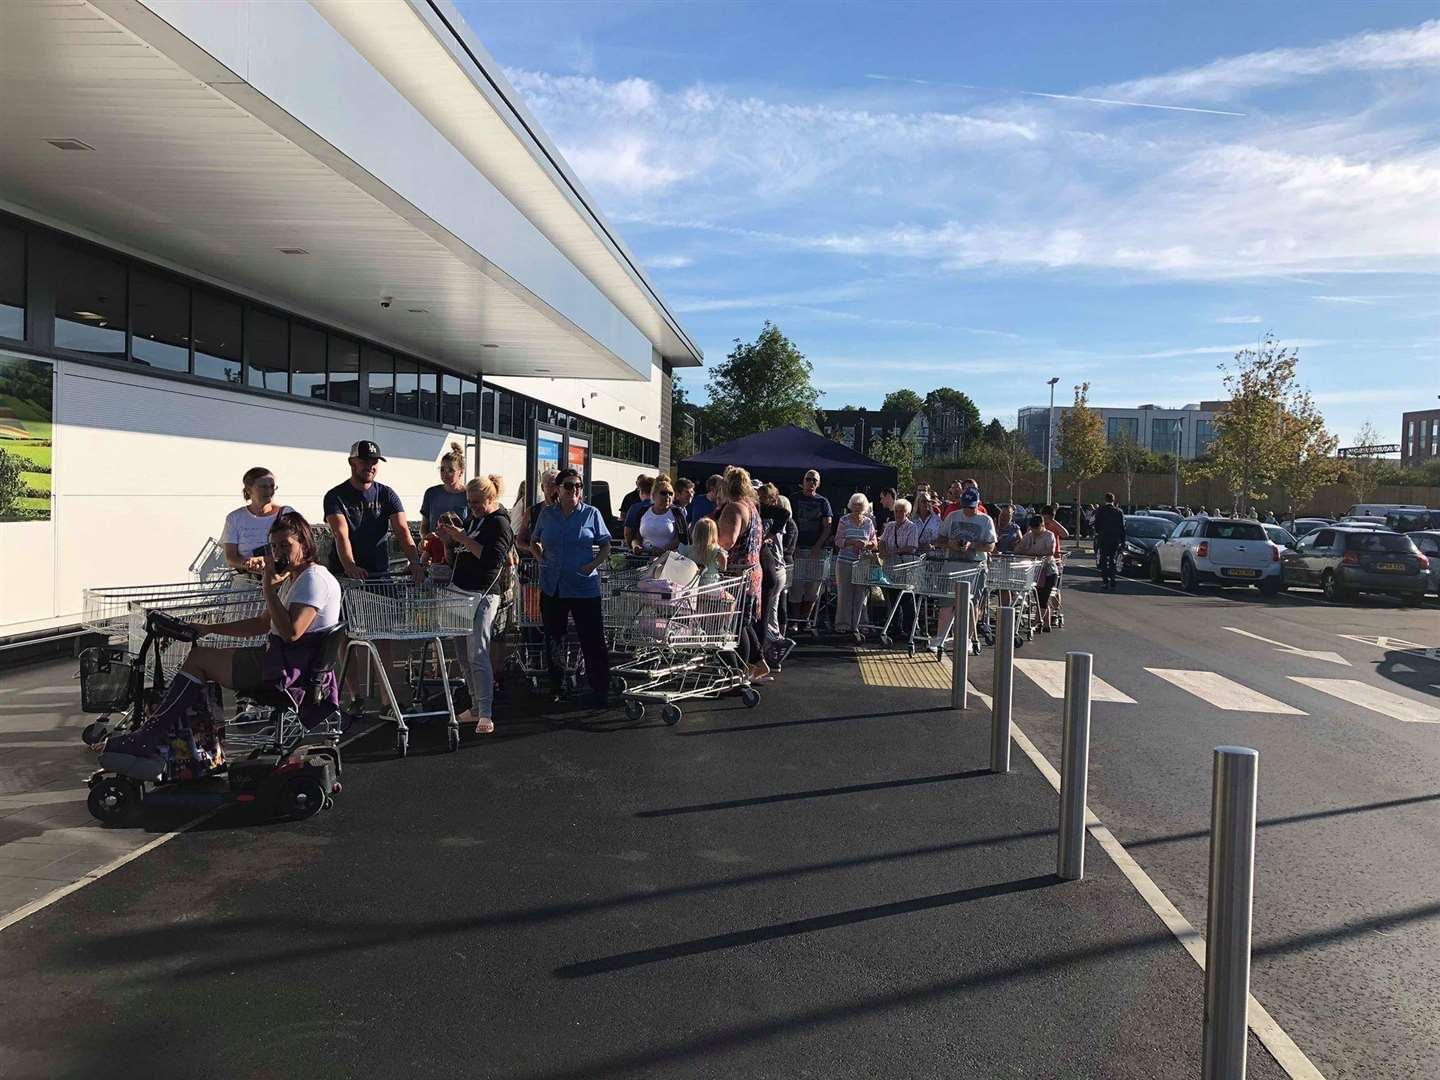 Shoppers queued up for hours